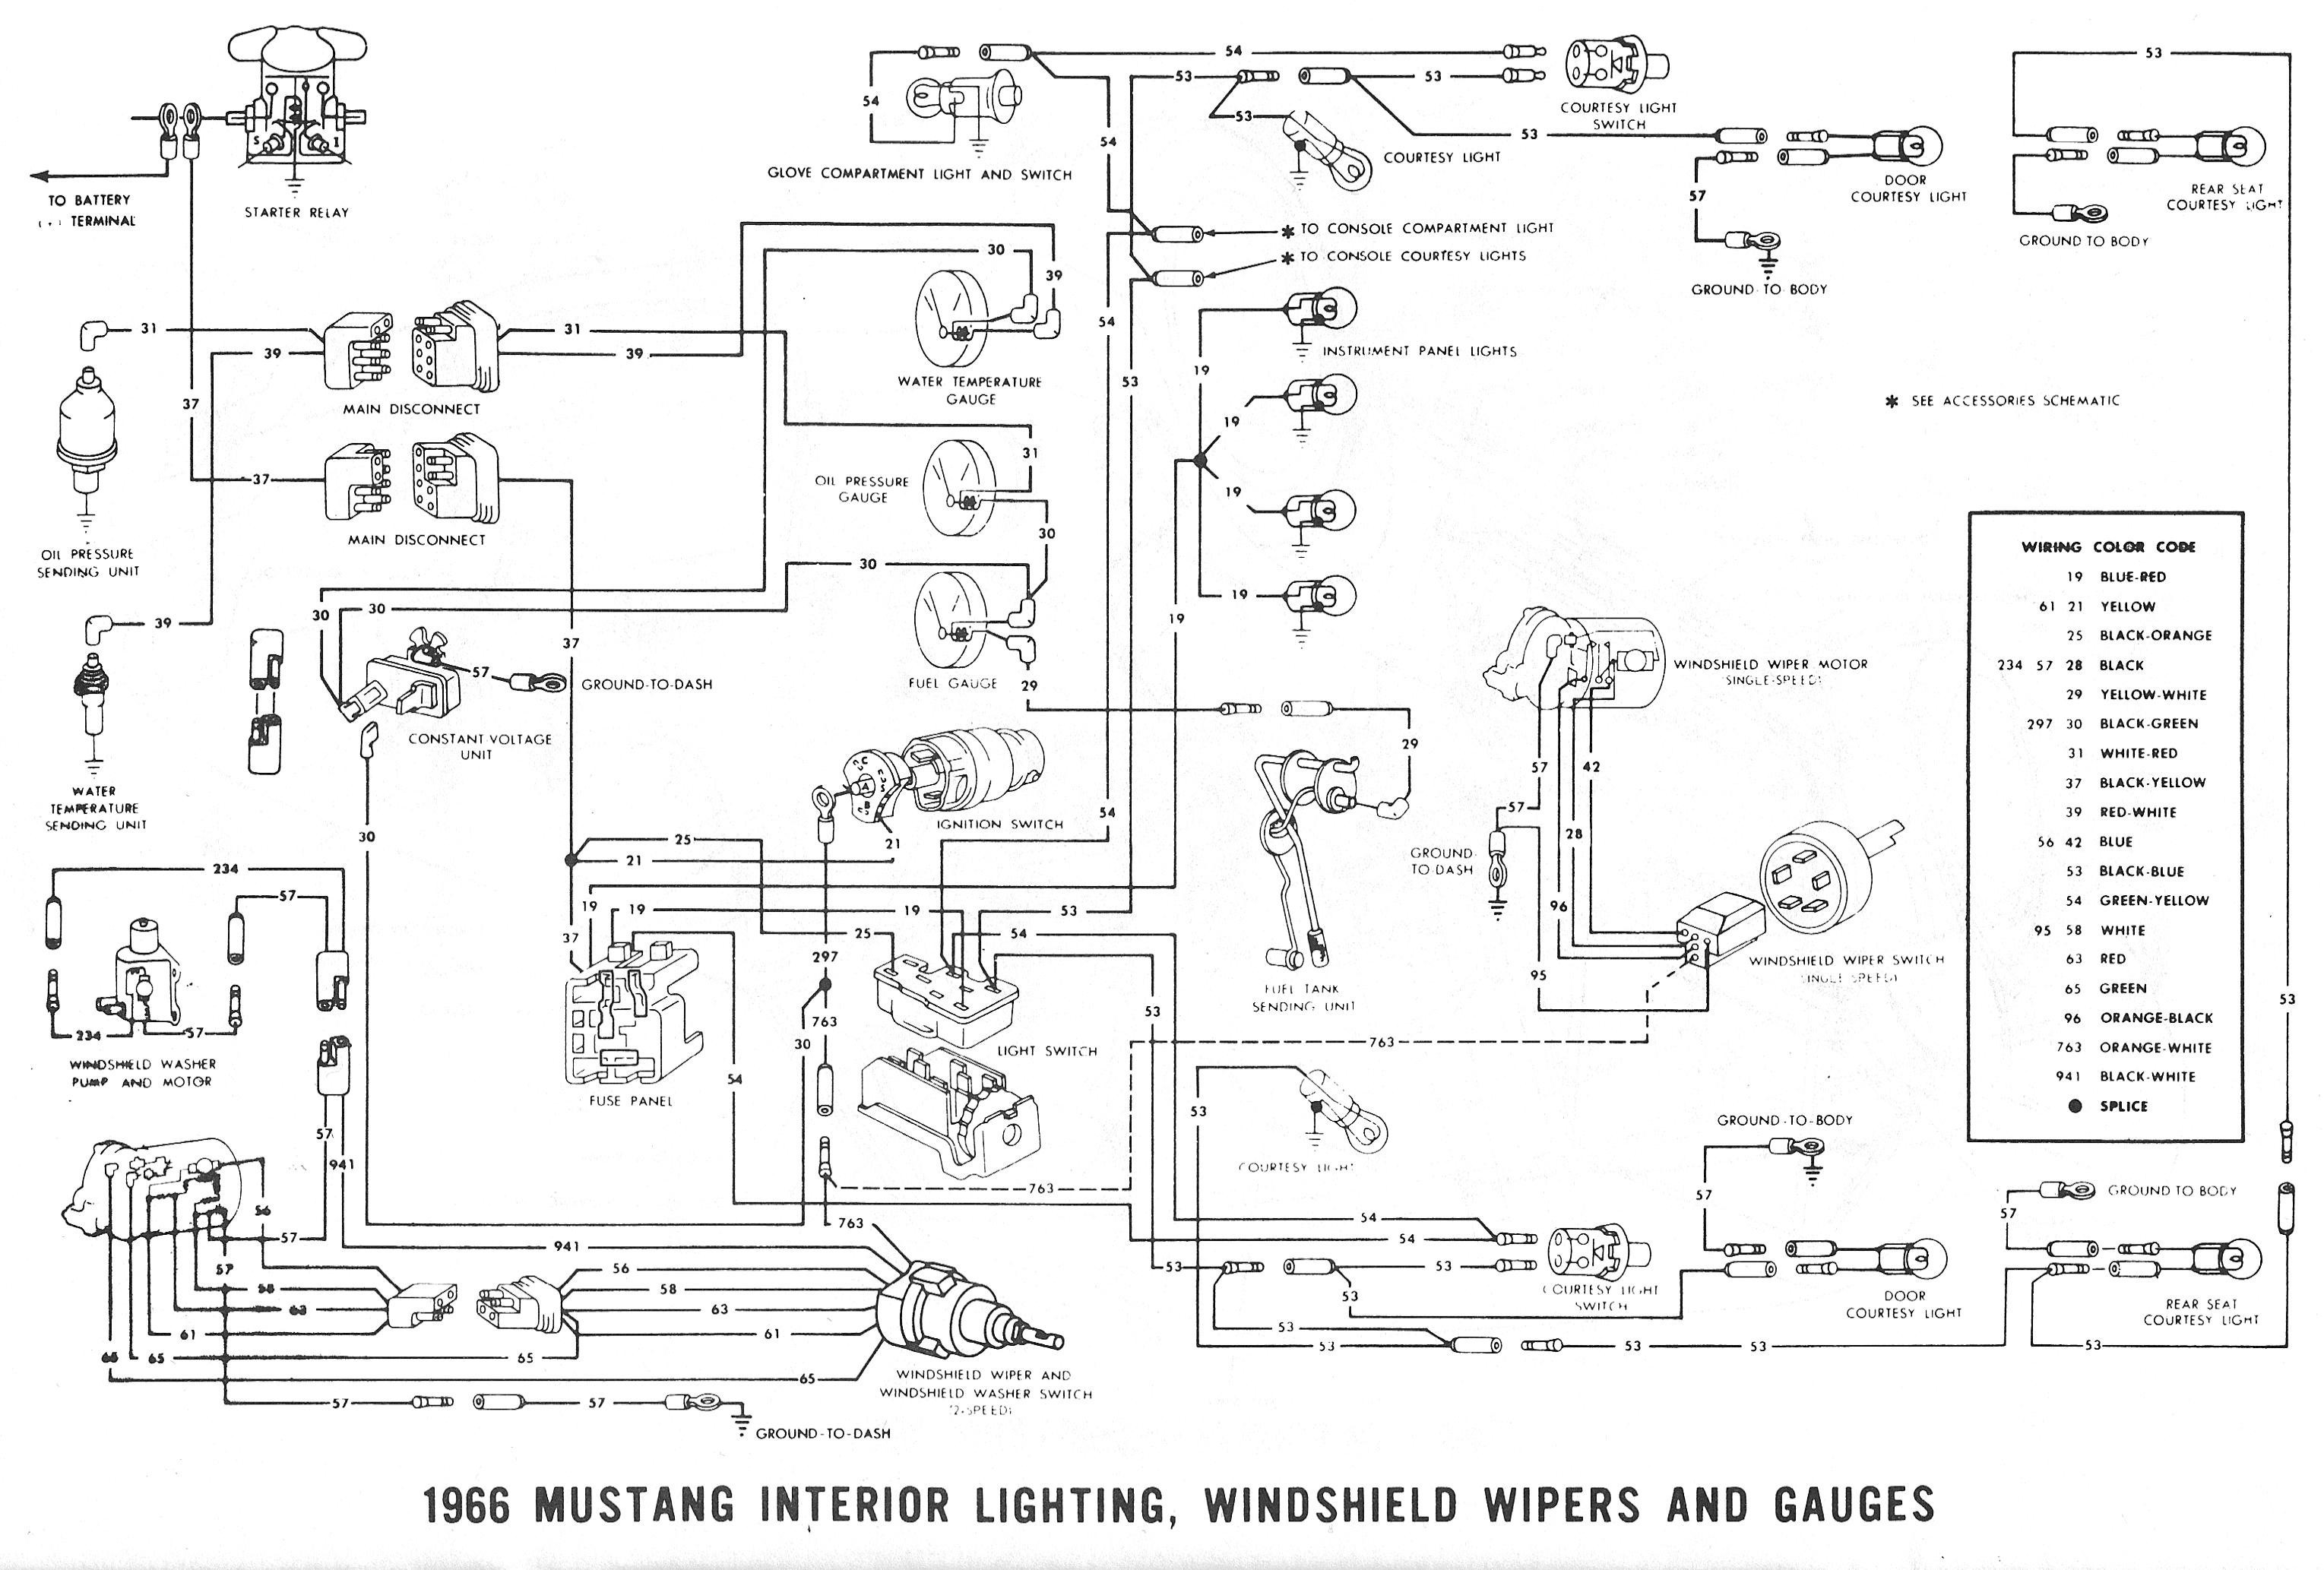 1974 mgb wiring diagram wiring library MG TF Wiring-Diagram 1971 mgb wiring diagram images gallery